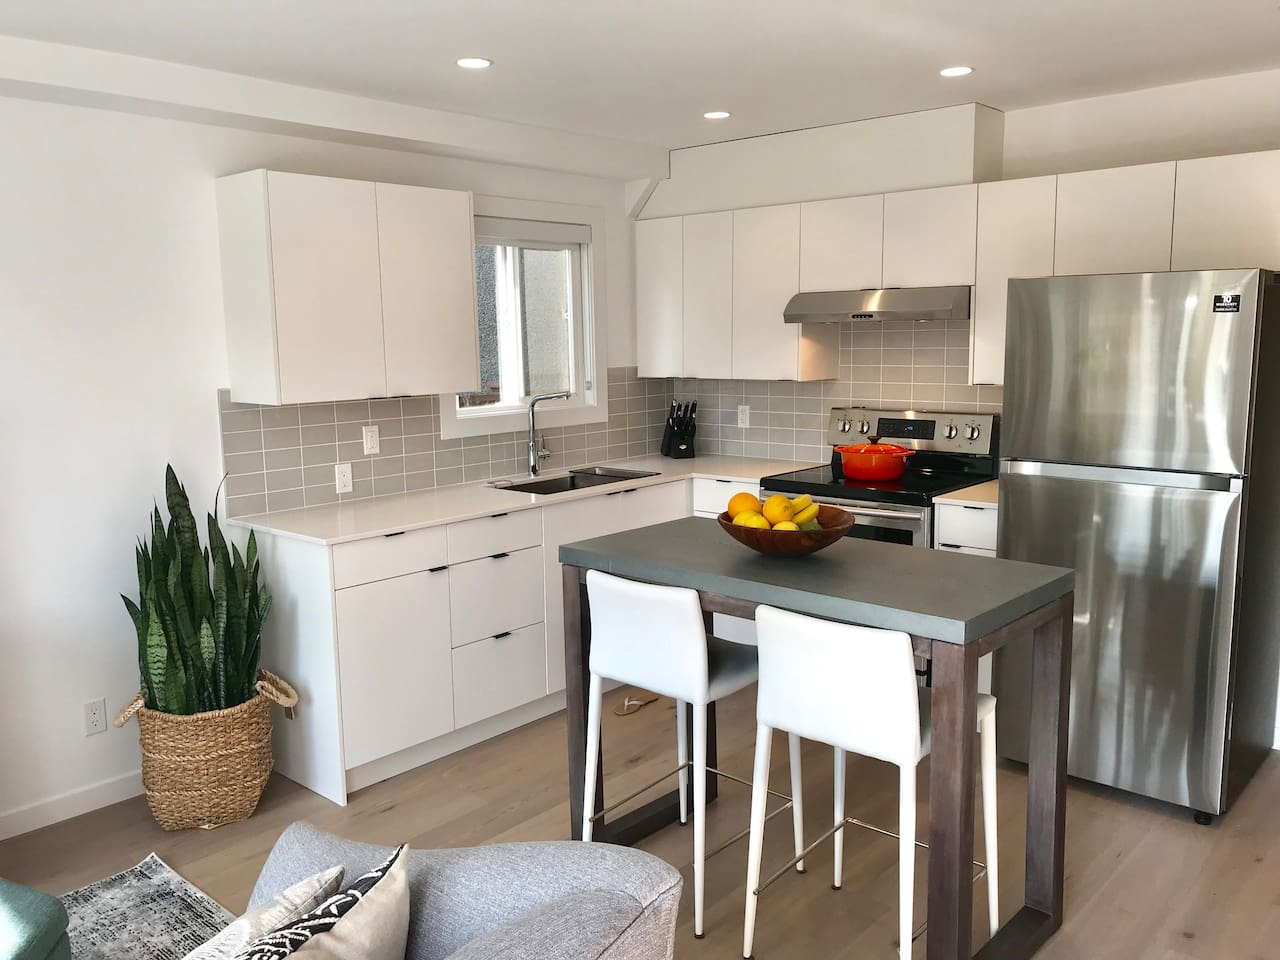 Our kitchen is fully equipped if you decide to eat in. There is also a coffee maker and microwave for quick easy meals, but we are spoiled with many great restaurants nearby.